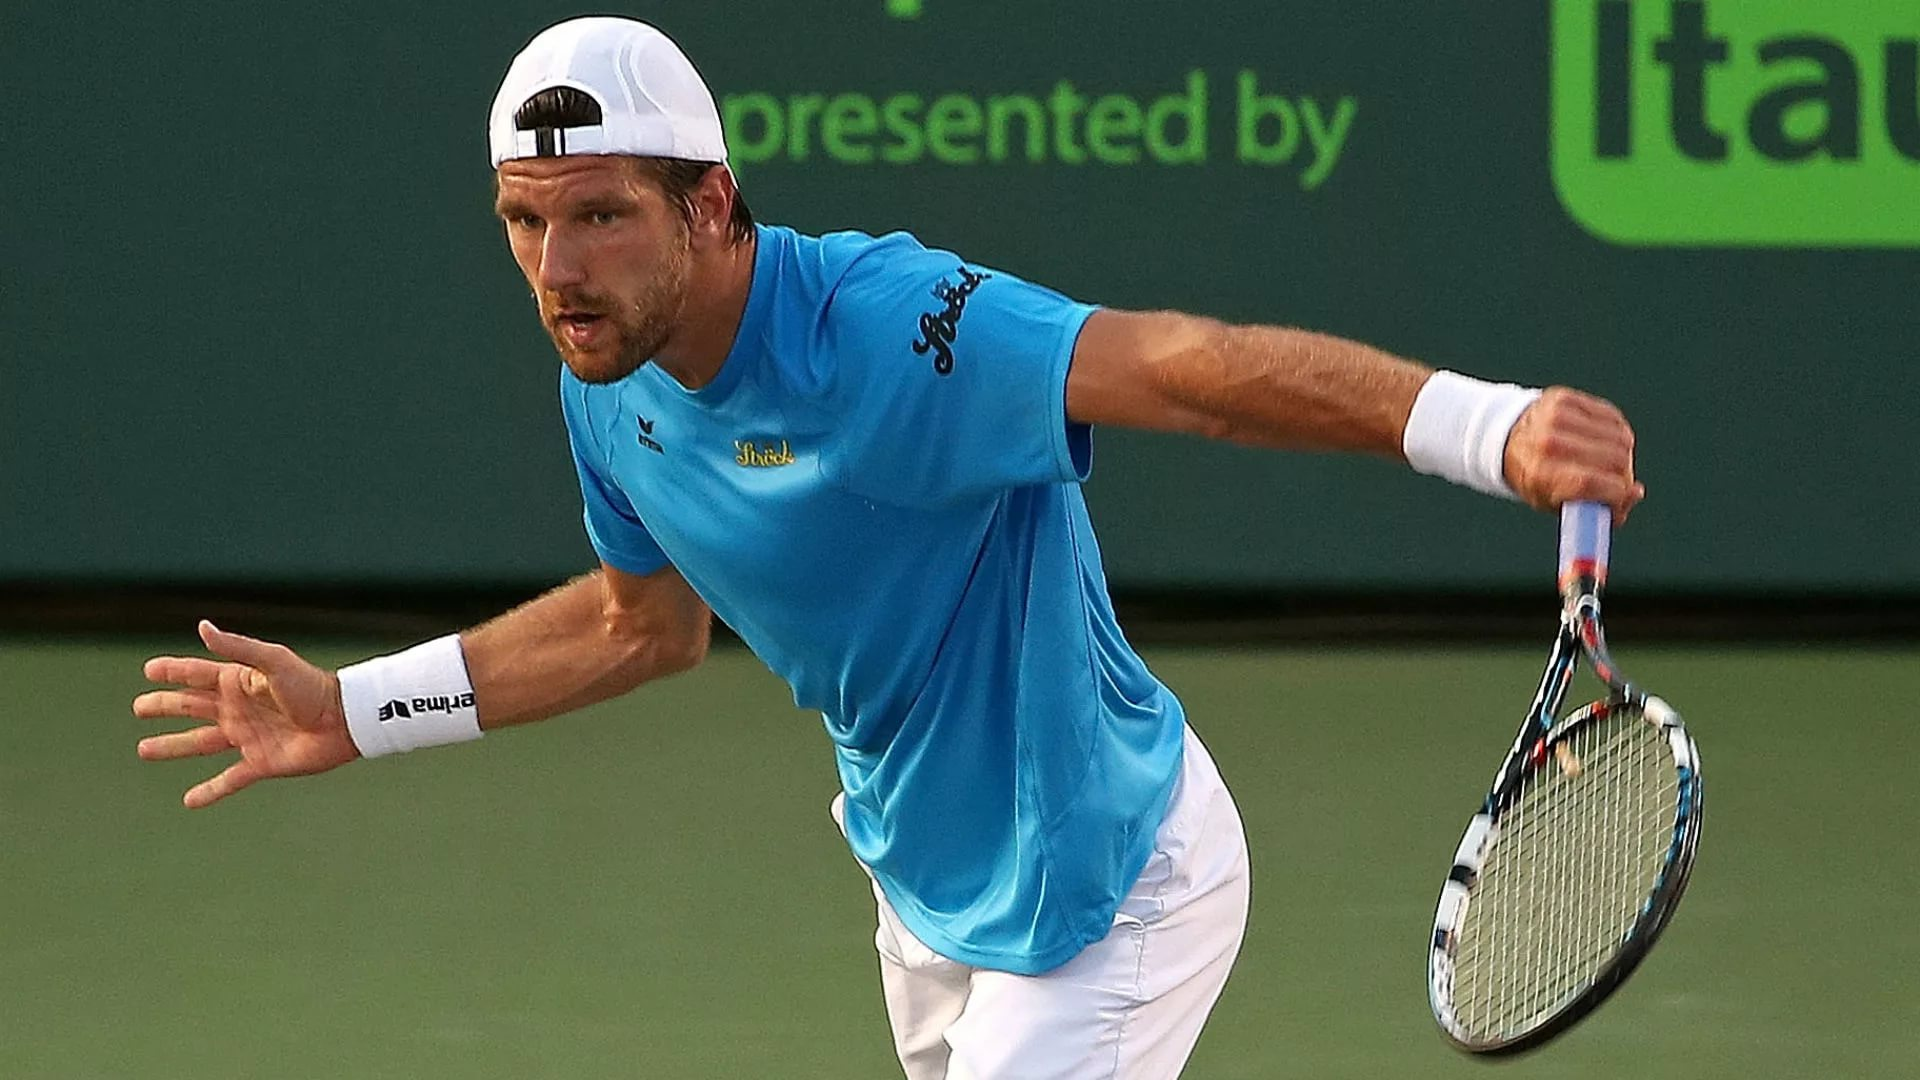 1920x1080 - Jurgen Melzer Wallpapers 10